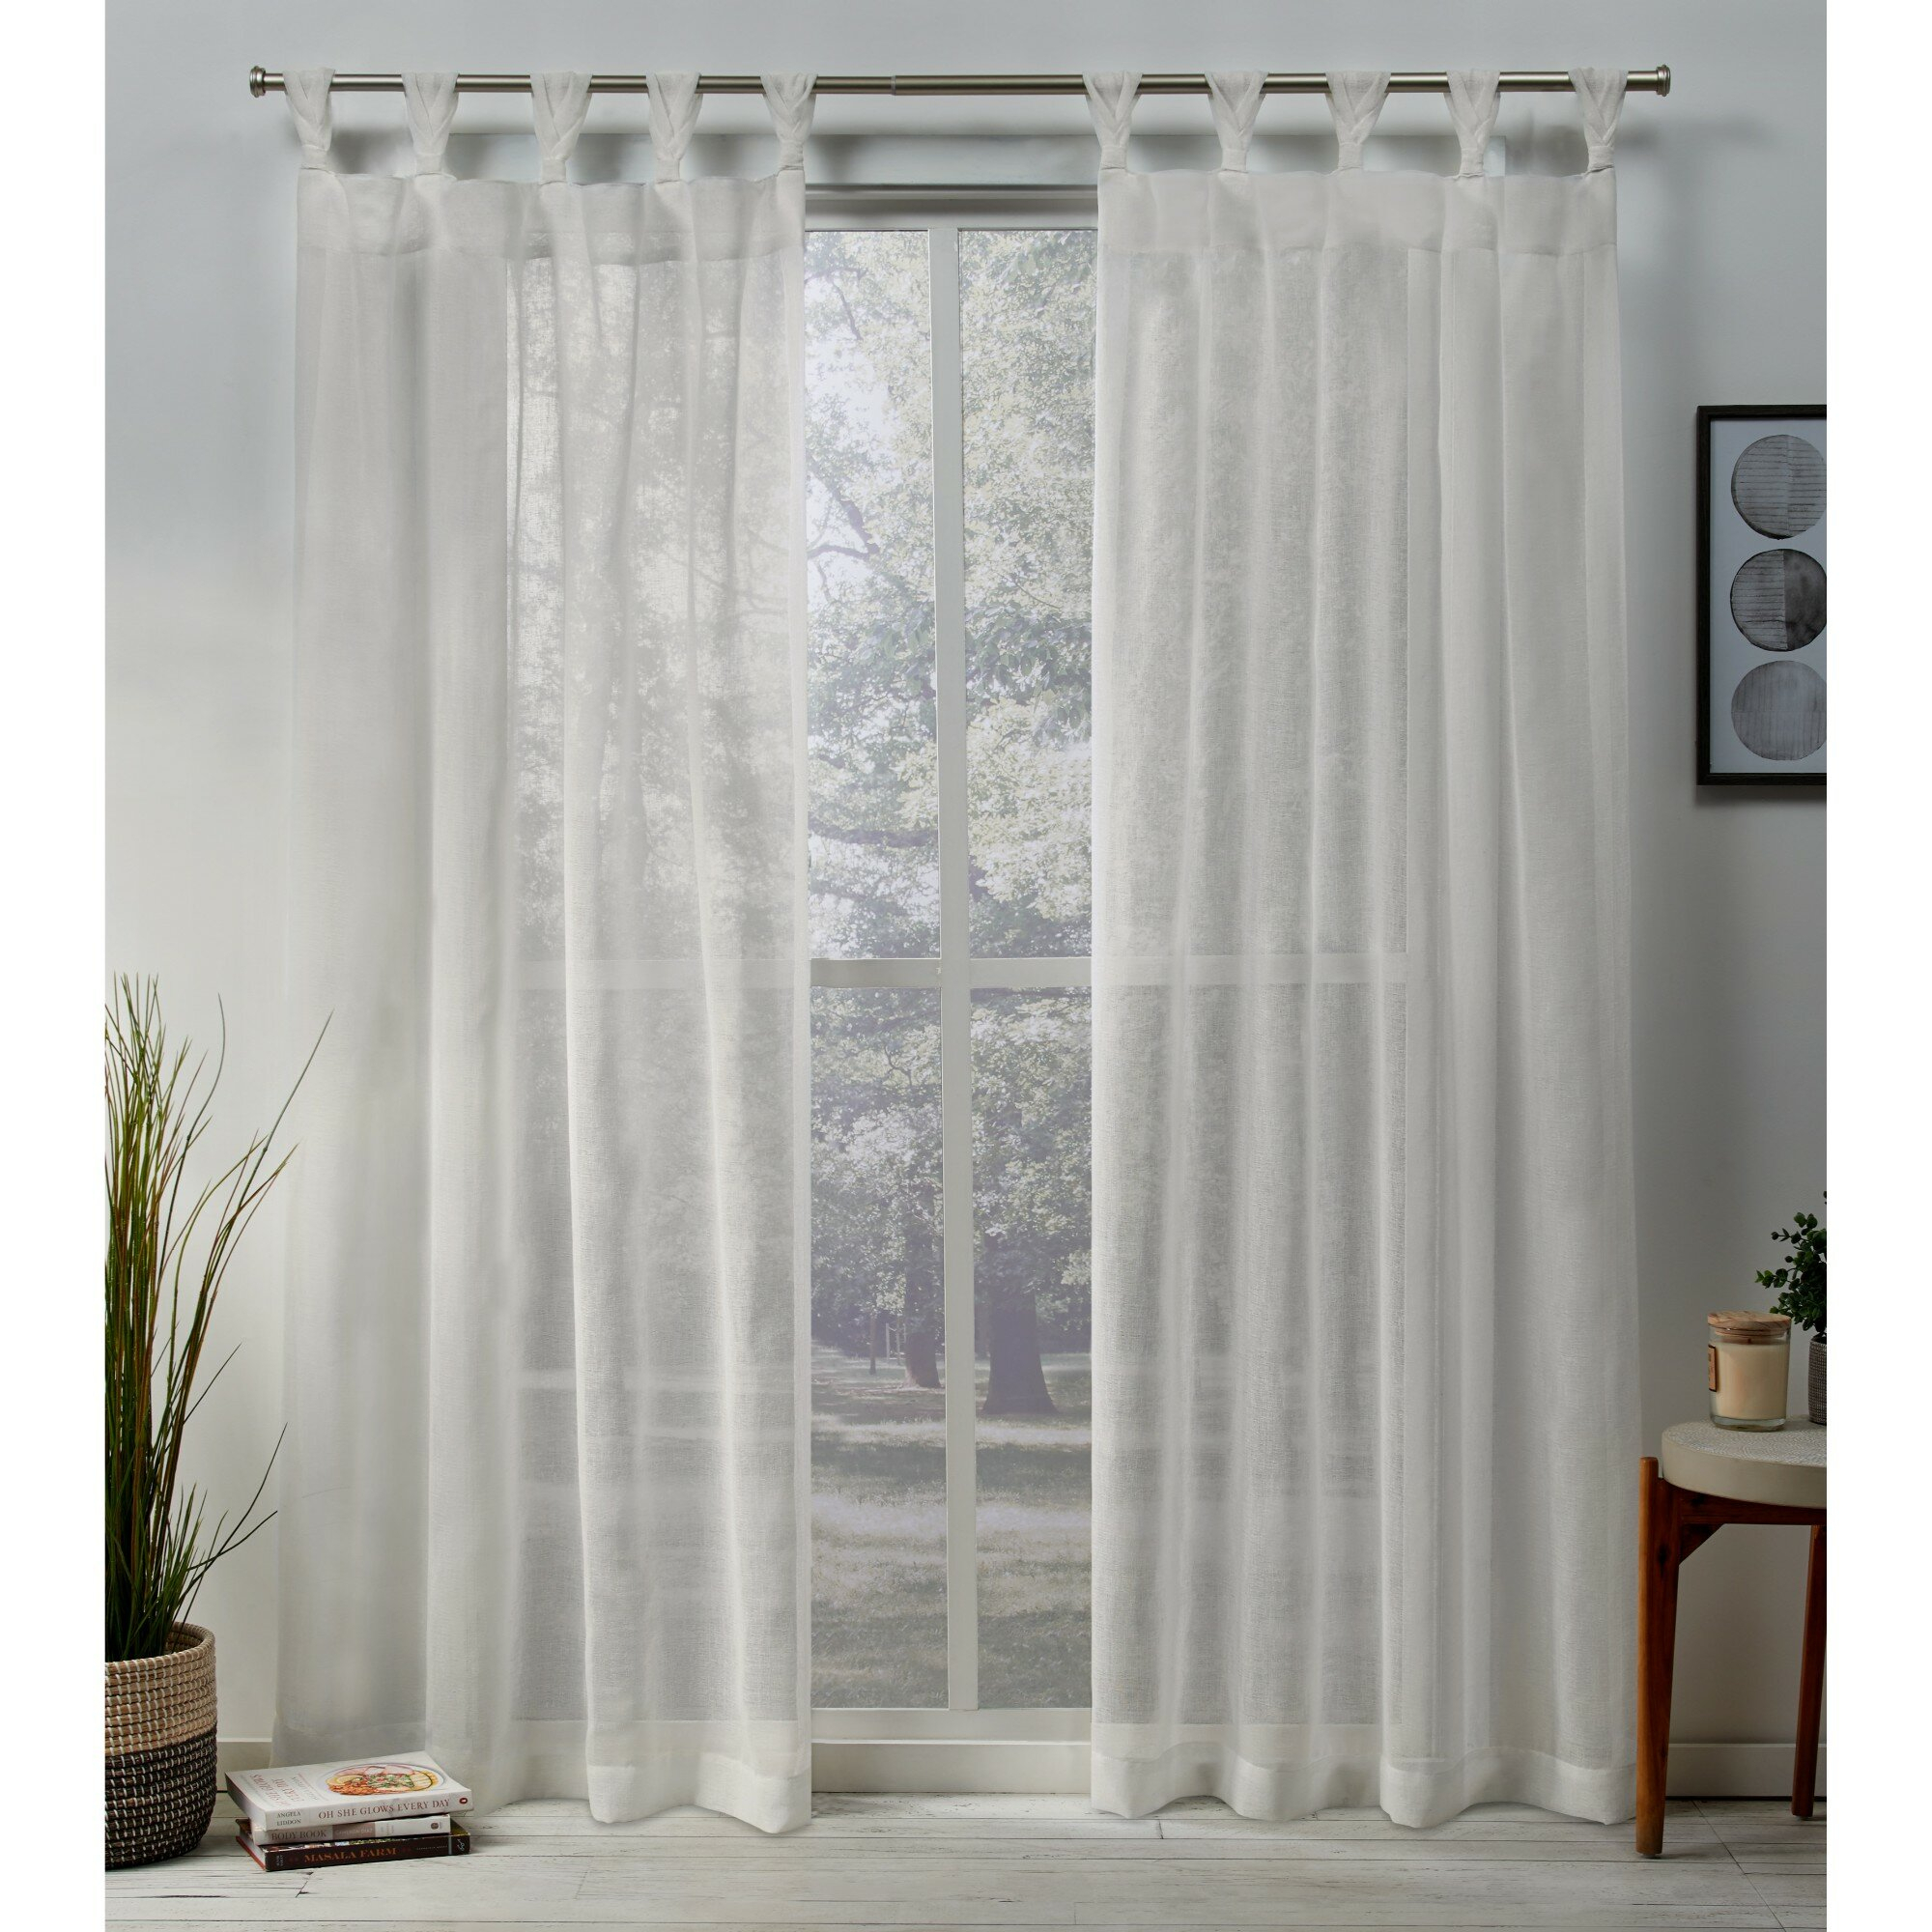 Mirfield Braided Solid Color Sheer Tab Top Curtain Panels With Regard To Tassels Applique Sheer Rod Pocket Top Curtain Panel Pairs (View 17 of 30)